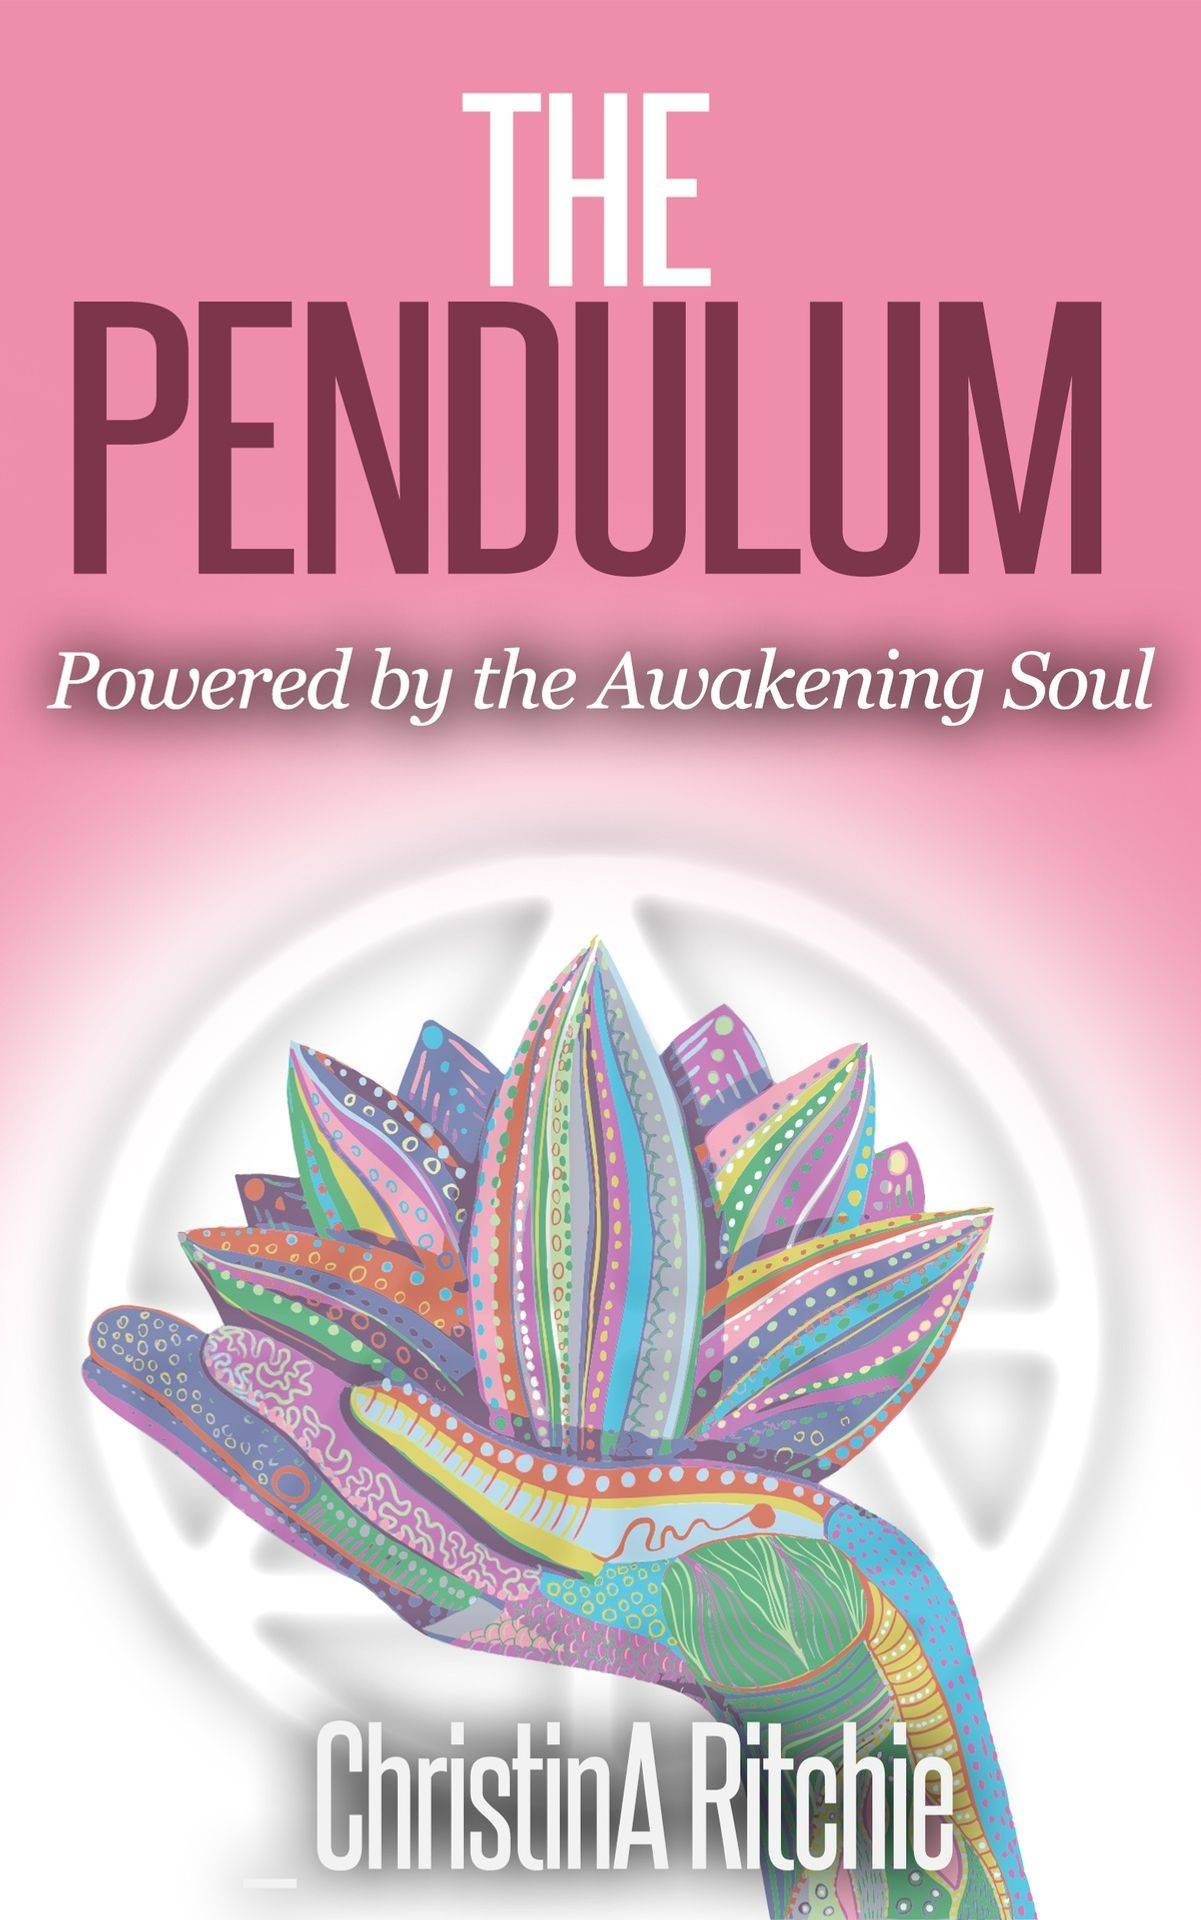 The Pendulum, Powered by the Awakening Soul